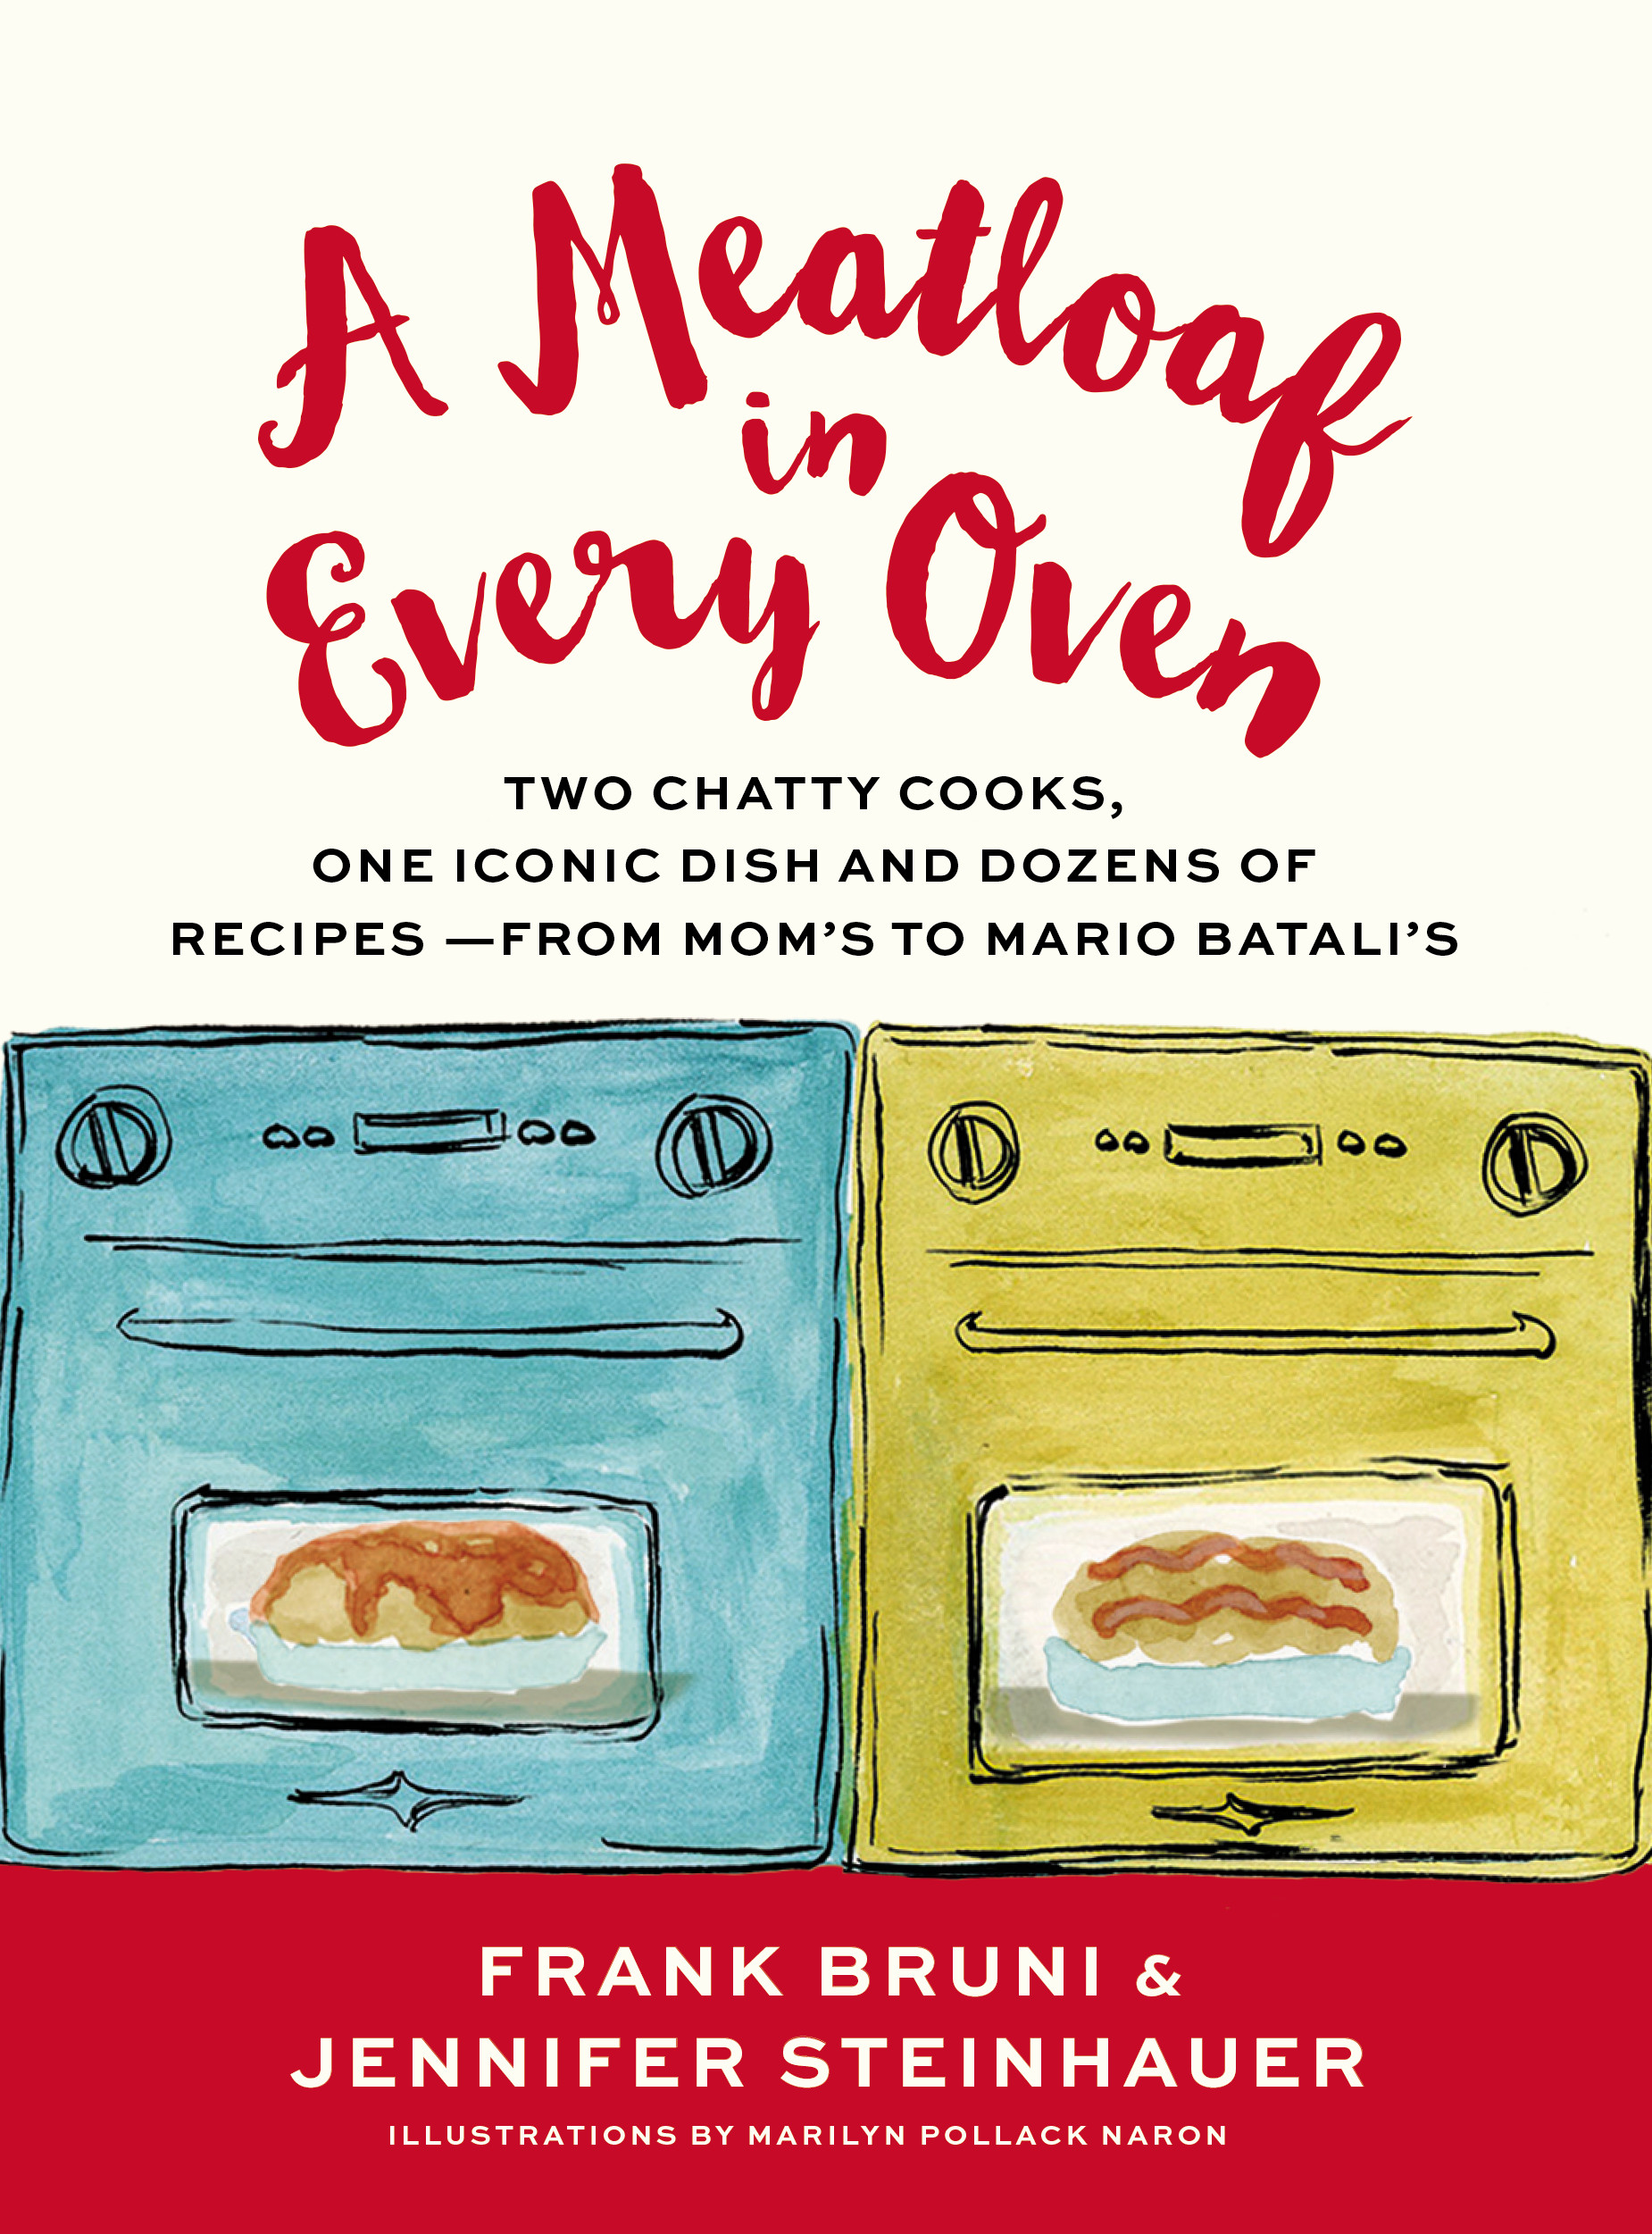 CANCELLED: Book Launch: A Meatloaf in Every Oven by Frank Bruni and Jennifer Steinhauer